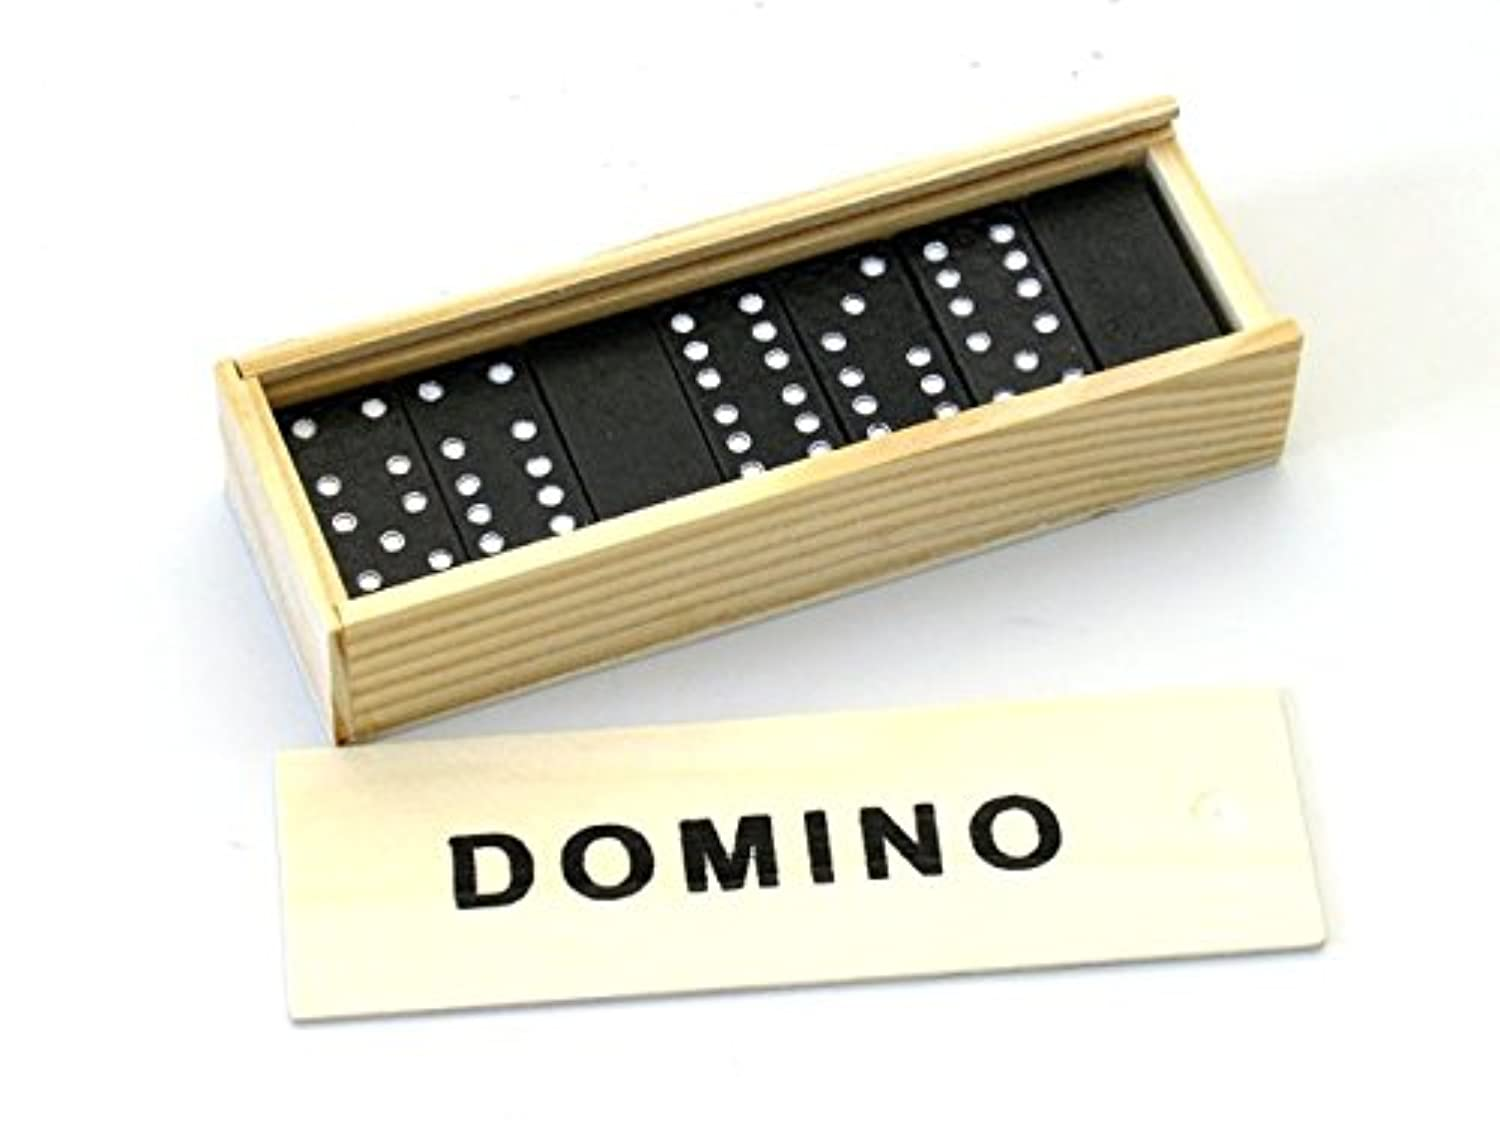 Double 6 Six, Mini Domino Dominoes with 28 Piece Stone Set Wooden Box Case Classic Fun Games for Gift - USA SELLER